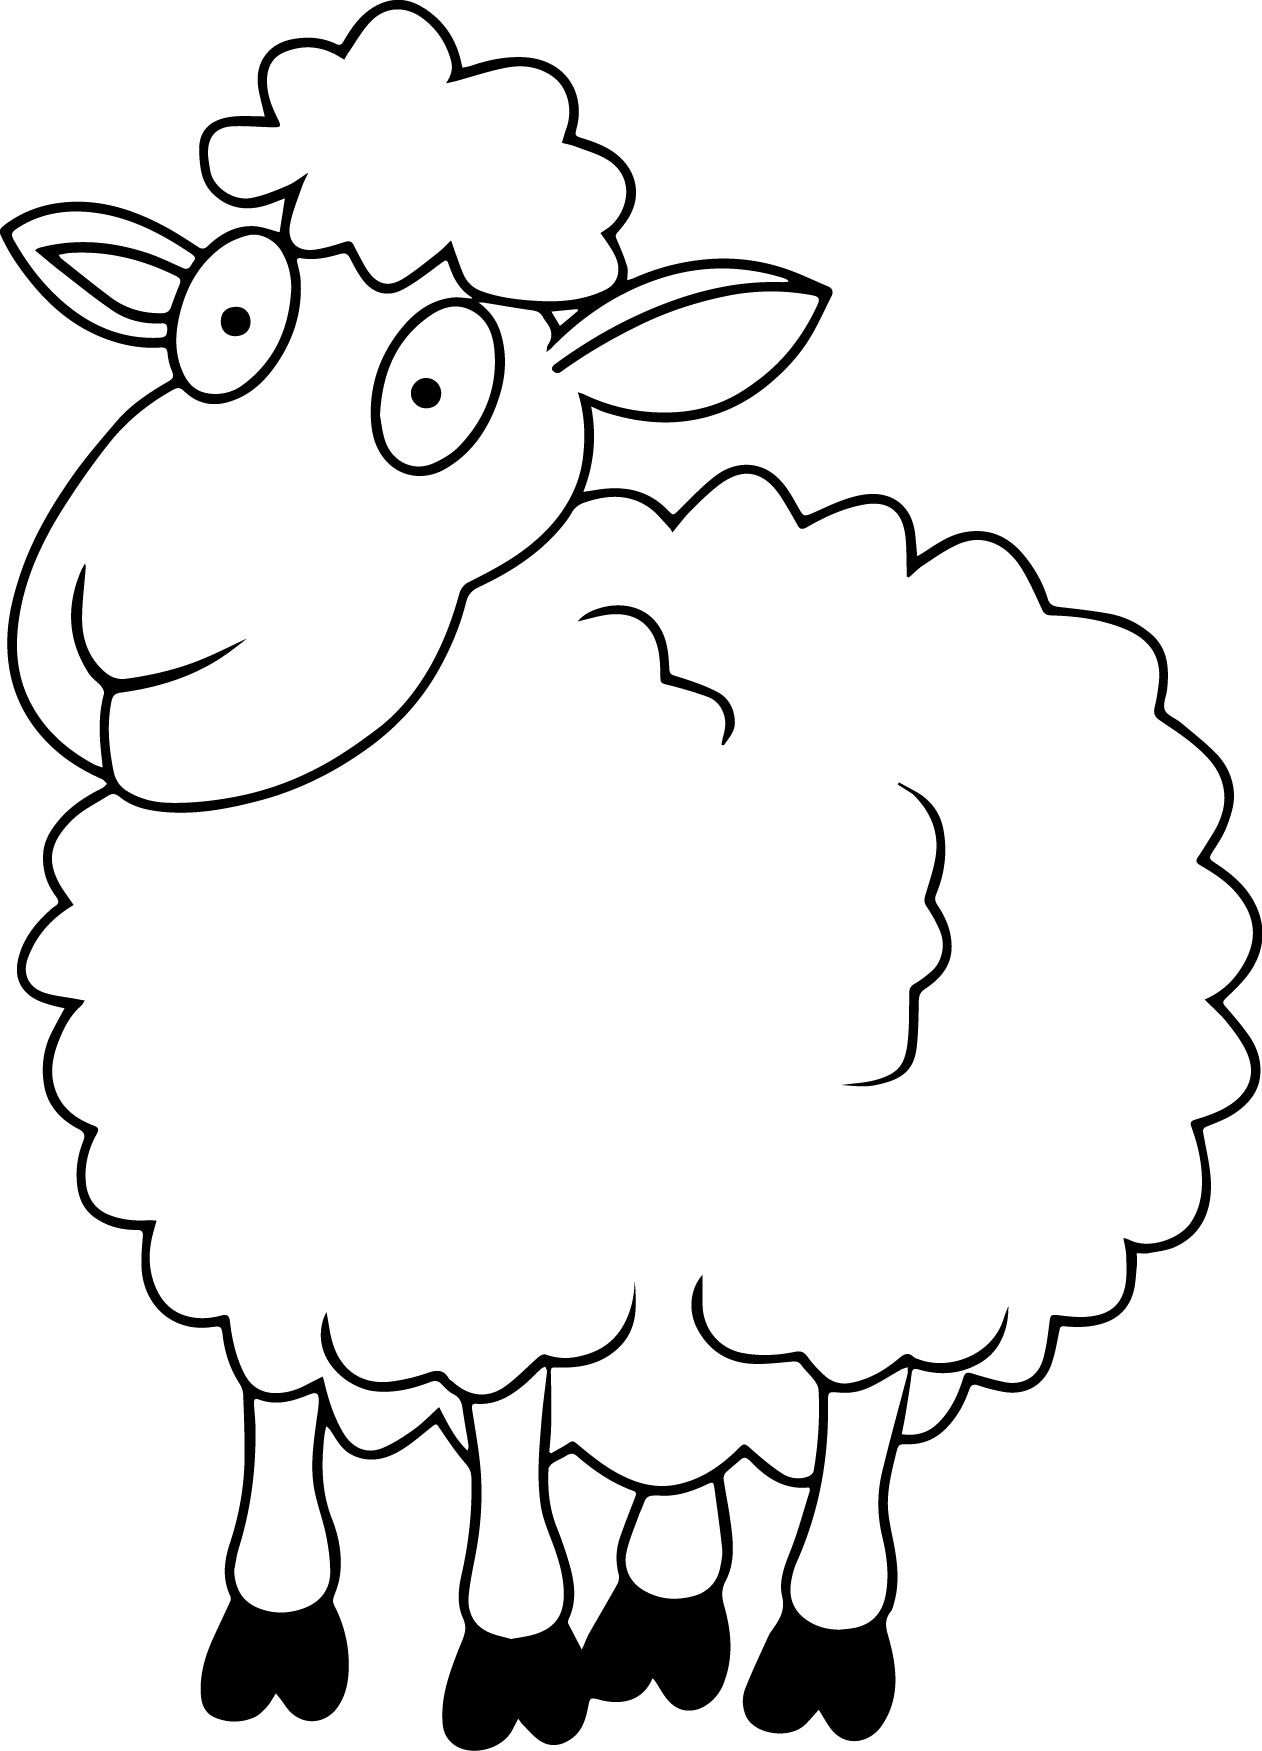 Sheep outline coloring page coloring home for Sheep coloring page